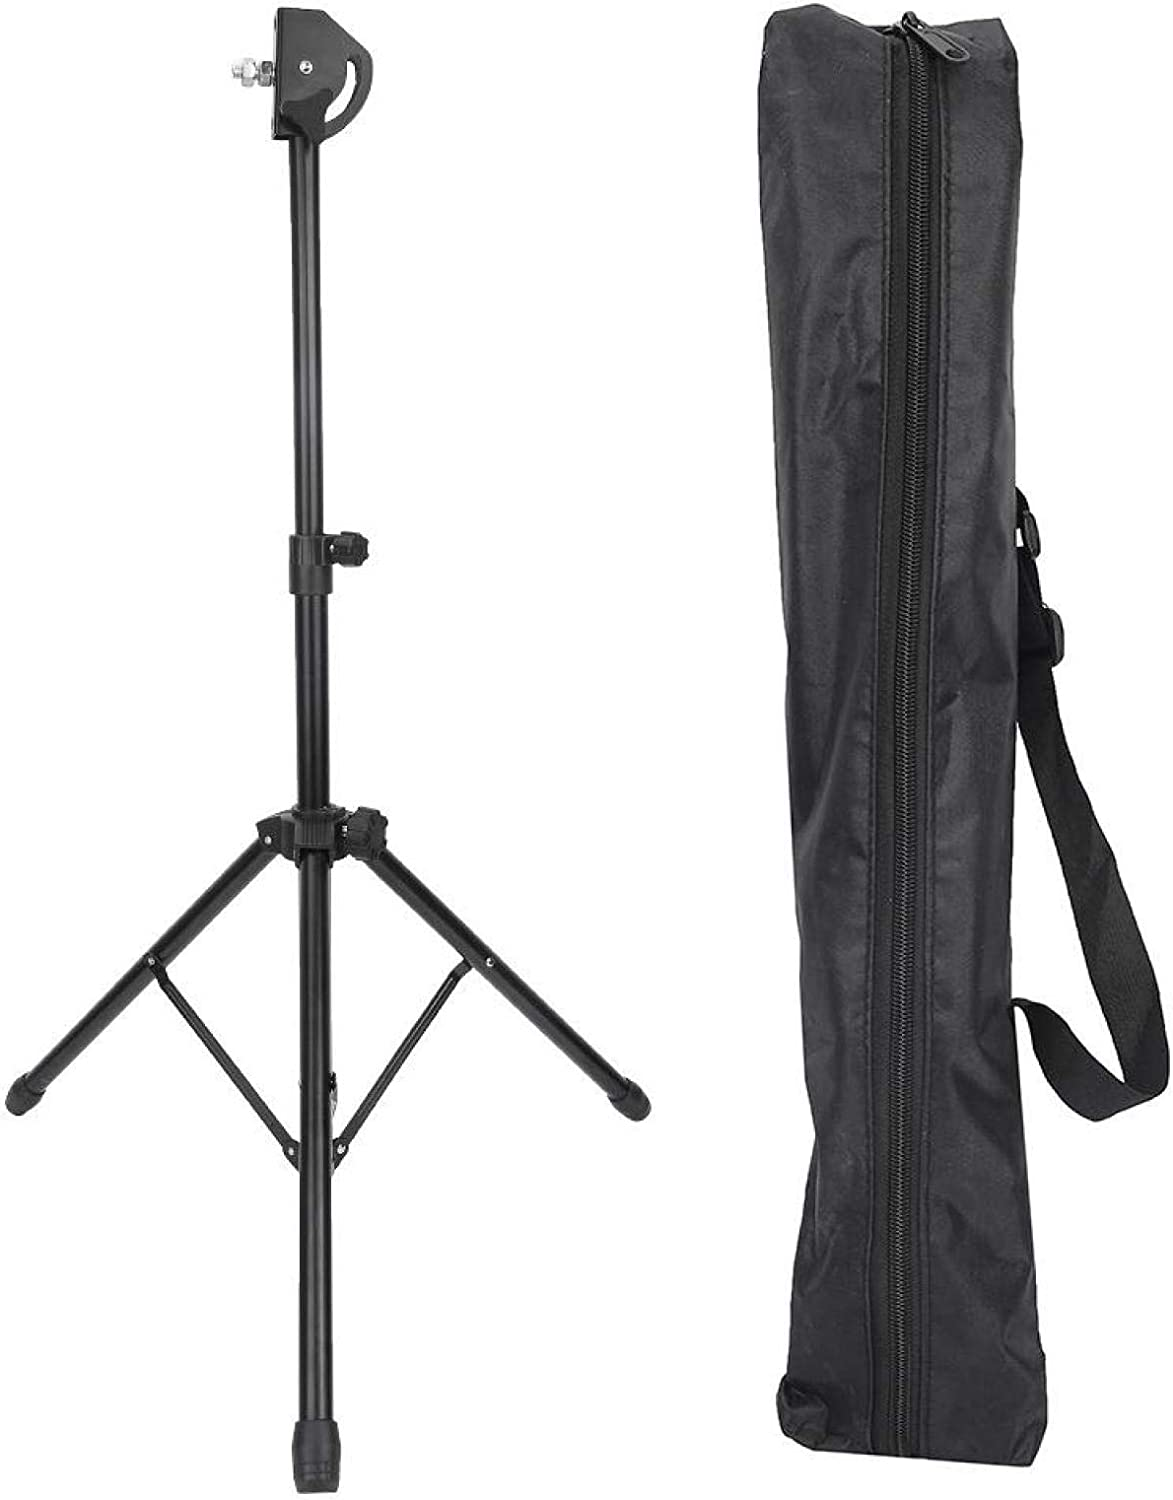 Dumb Drum Stand Adjustable Shelf It is very popular Support Exercise Las Vegas Mall For Training